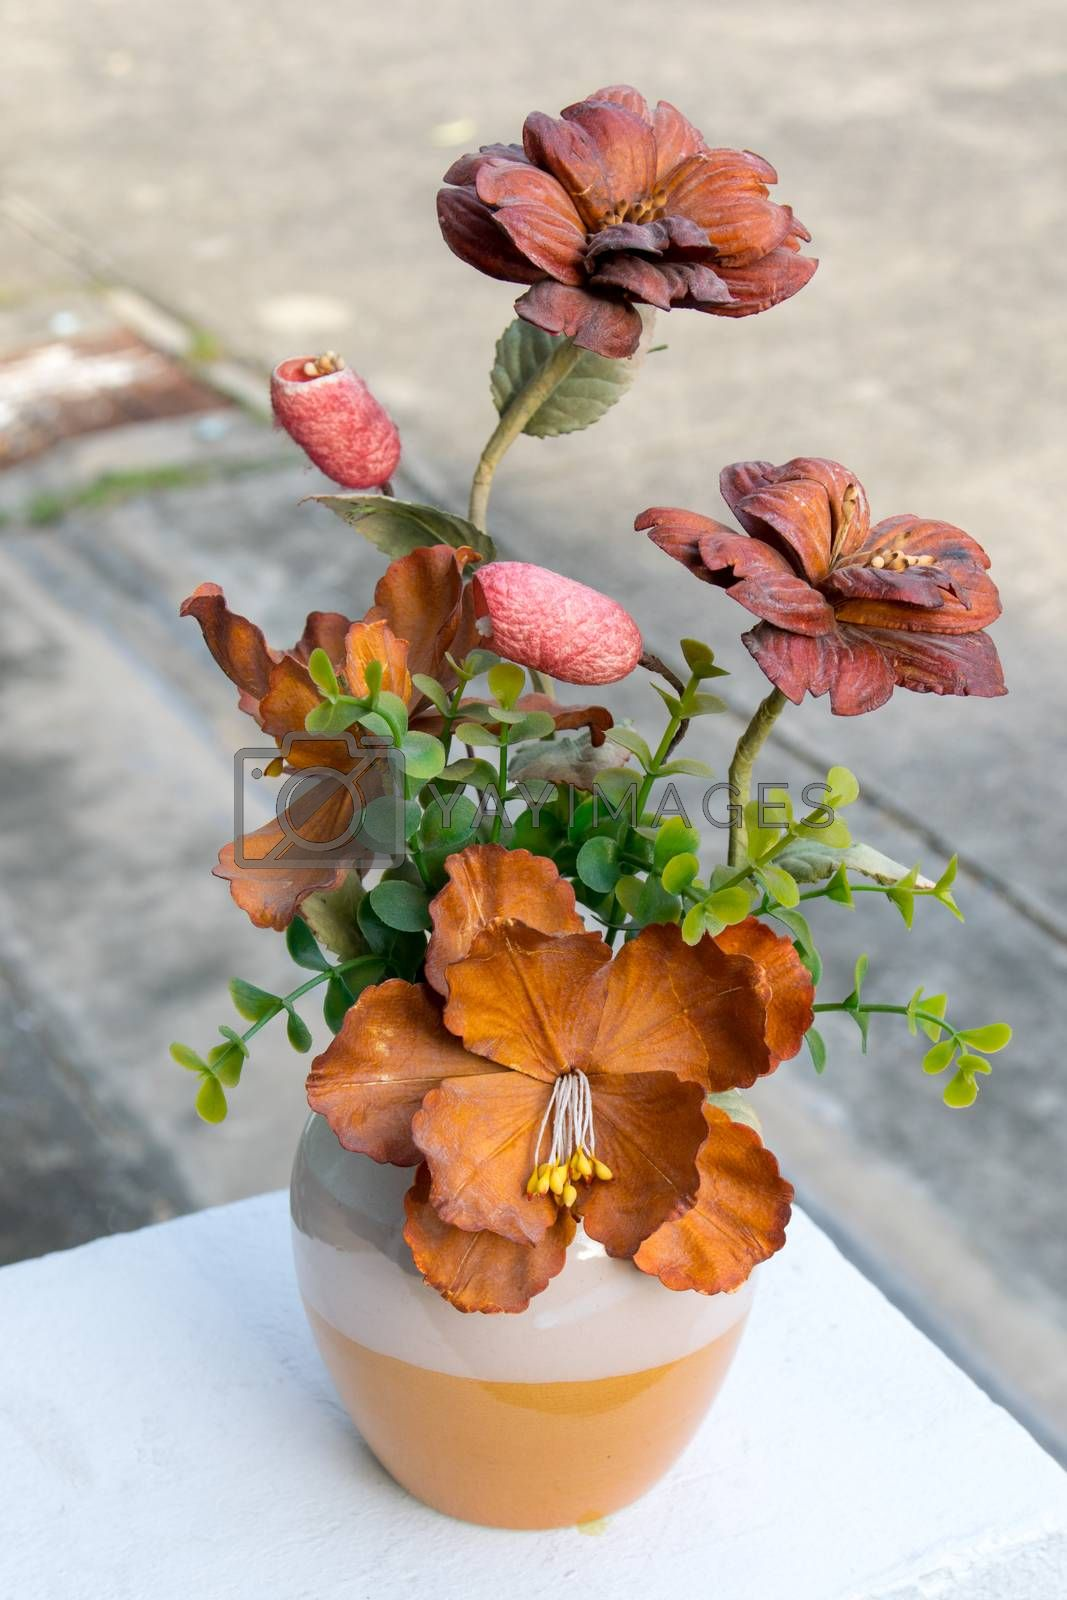 Beautiful and colorful vase plastic flowers.